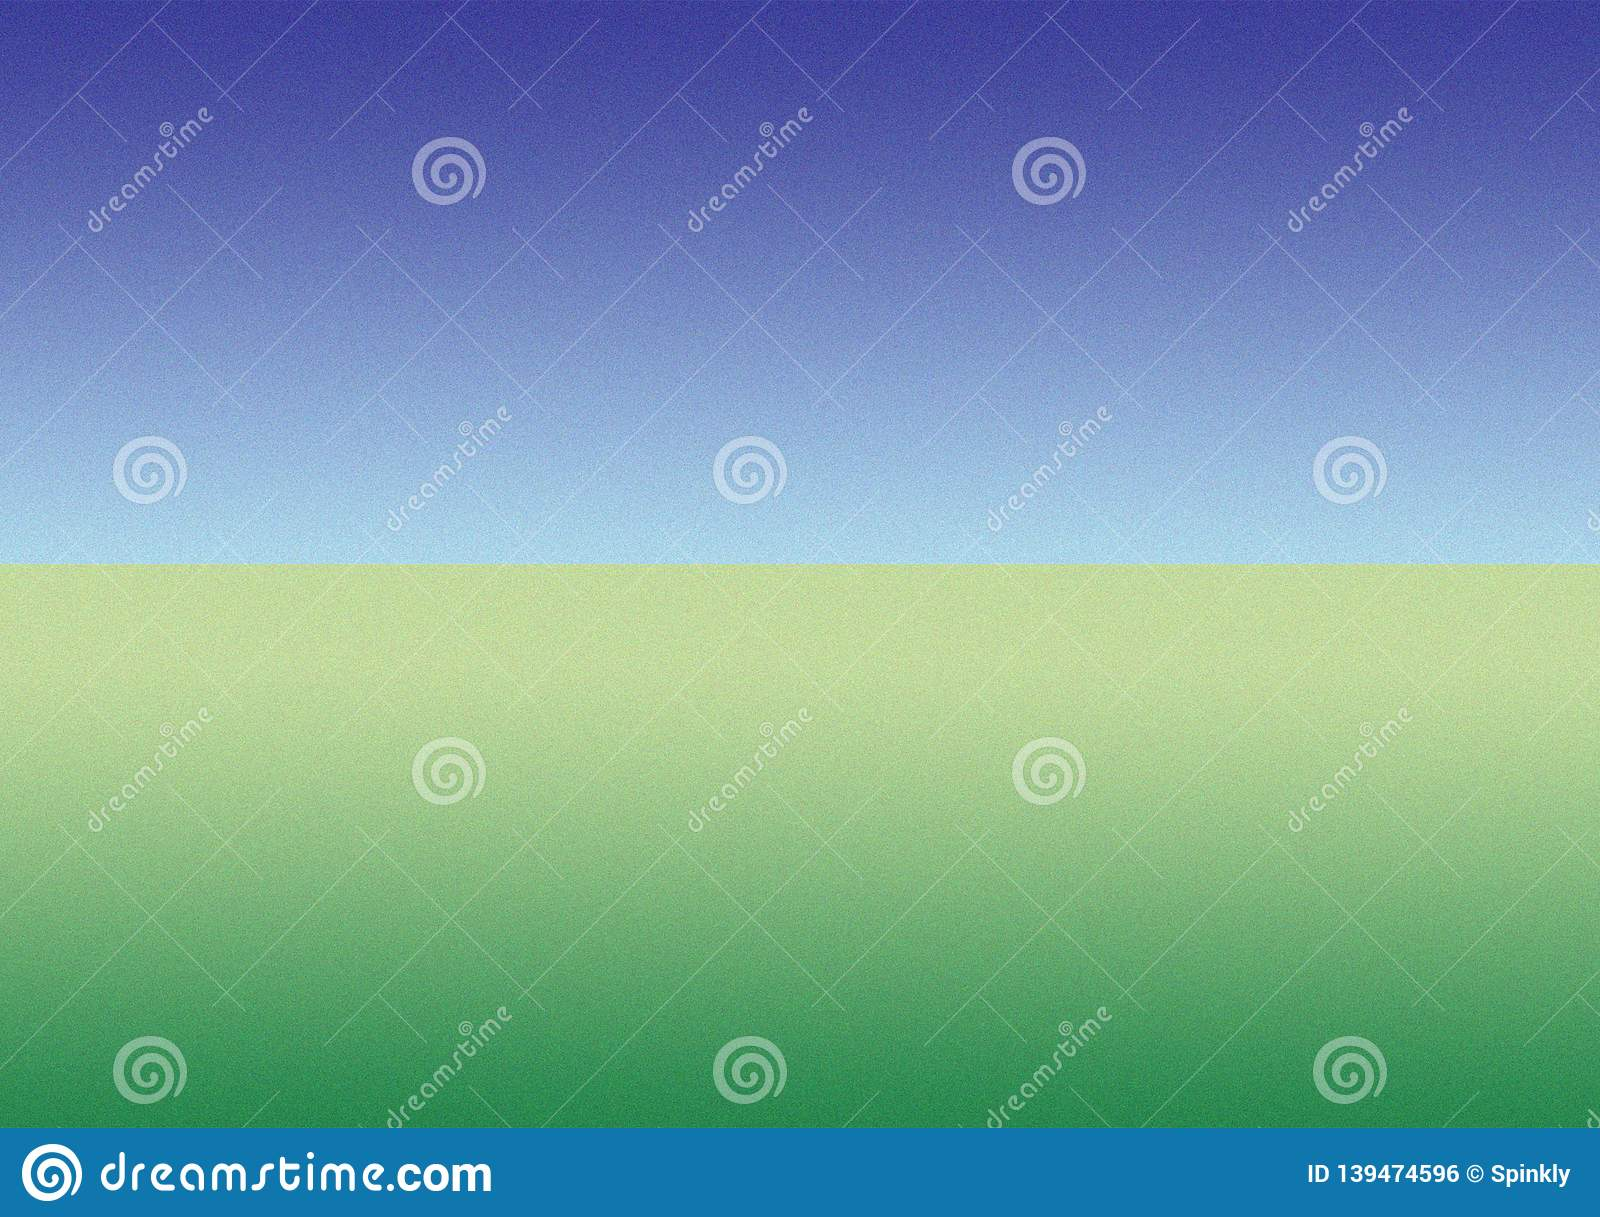 Blue Green Gradient Background Wallpaper Design Stock